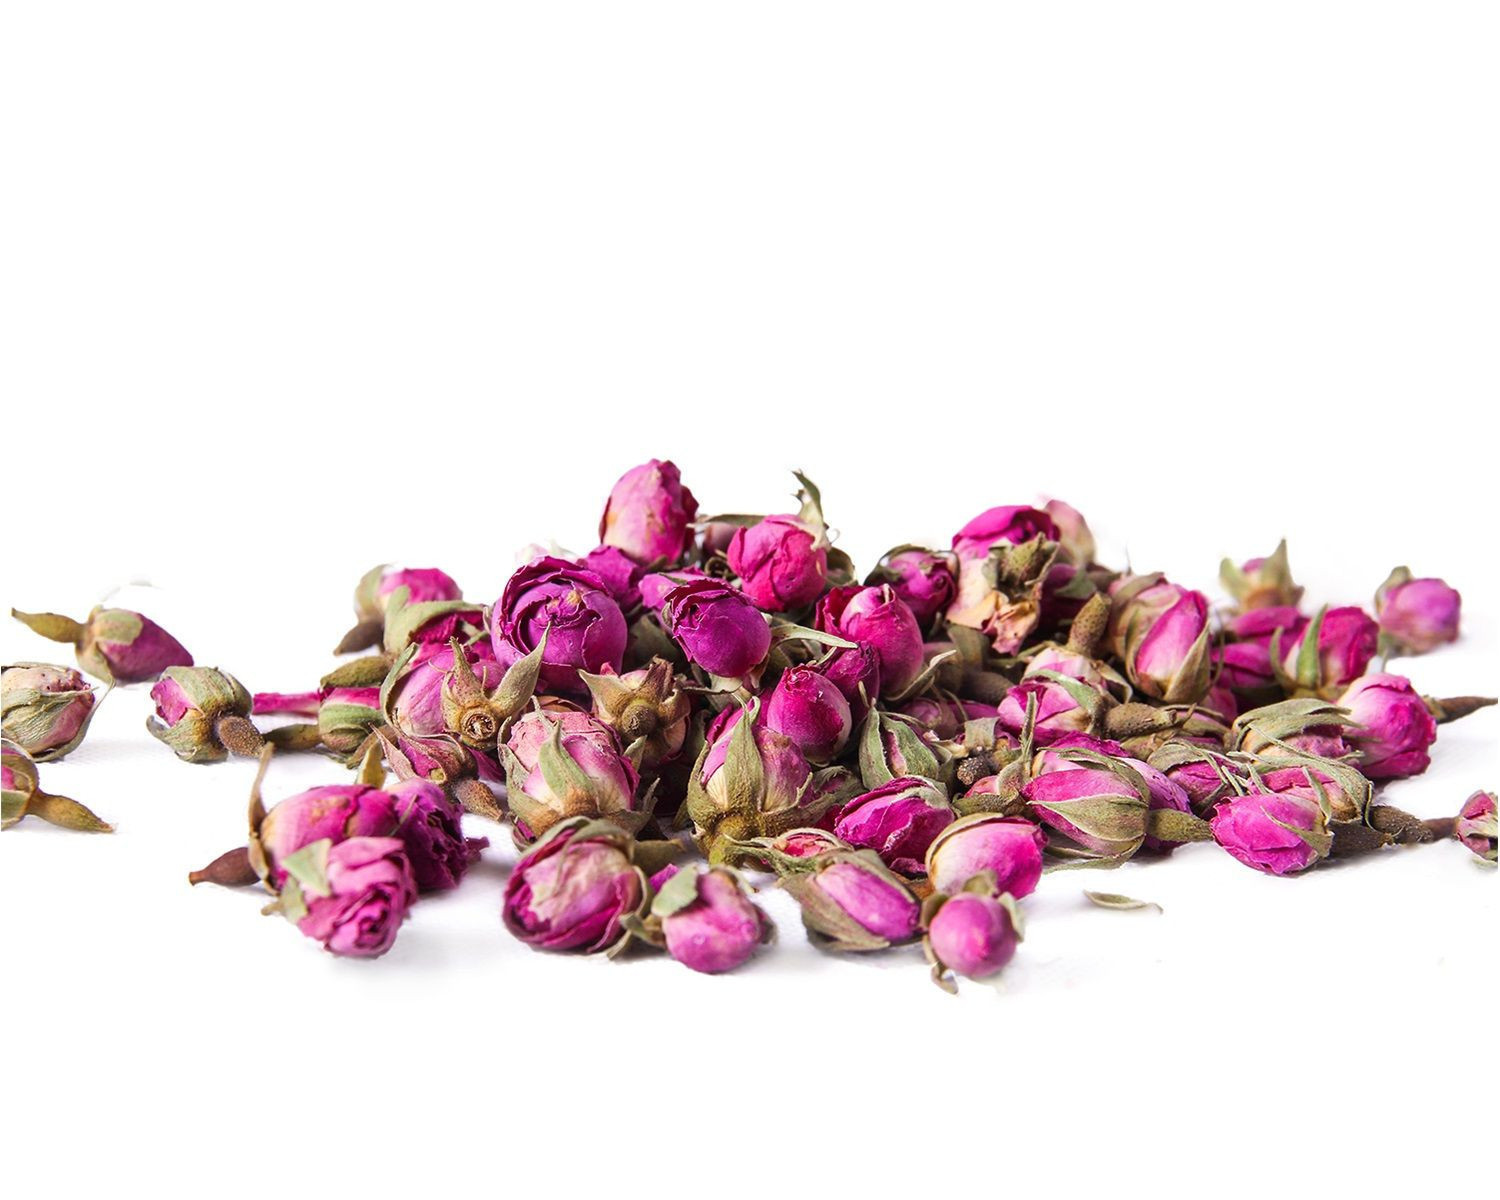 Organic and Conventional Rose Buds